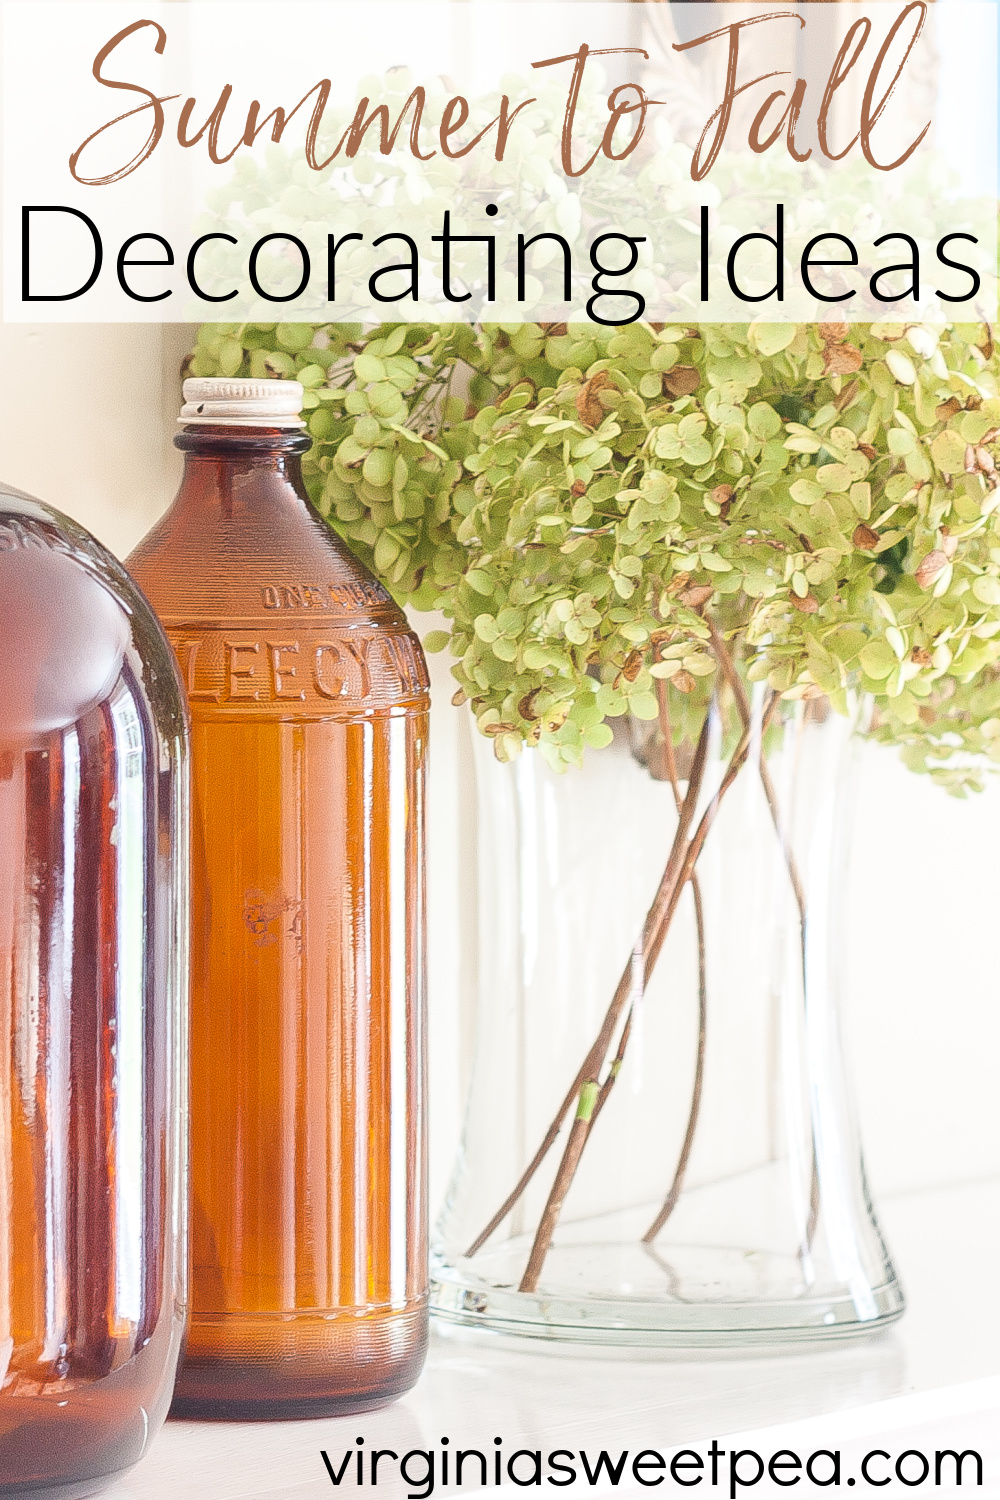 Summer to Fall Decorating Ideas - Get great ideas to use for transitioning your home decor from summer to fall. #summertofalldecoratingideas #falldecoratingideas #falldecorideas via @spaula